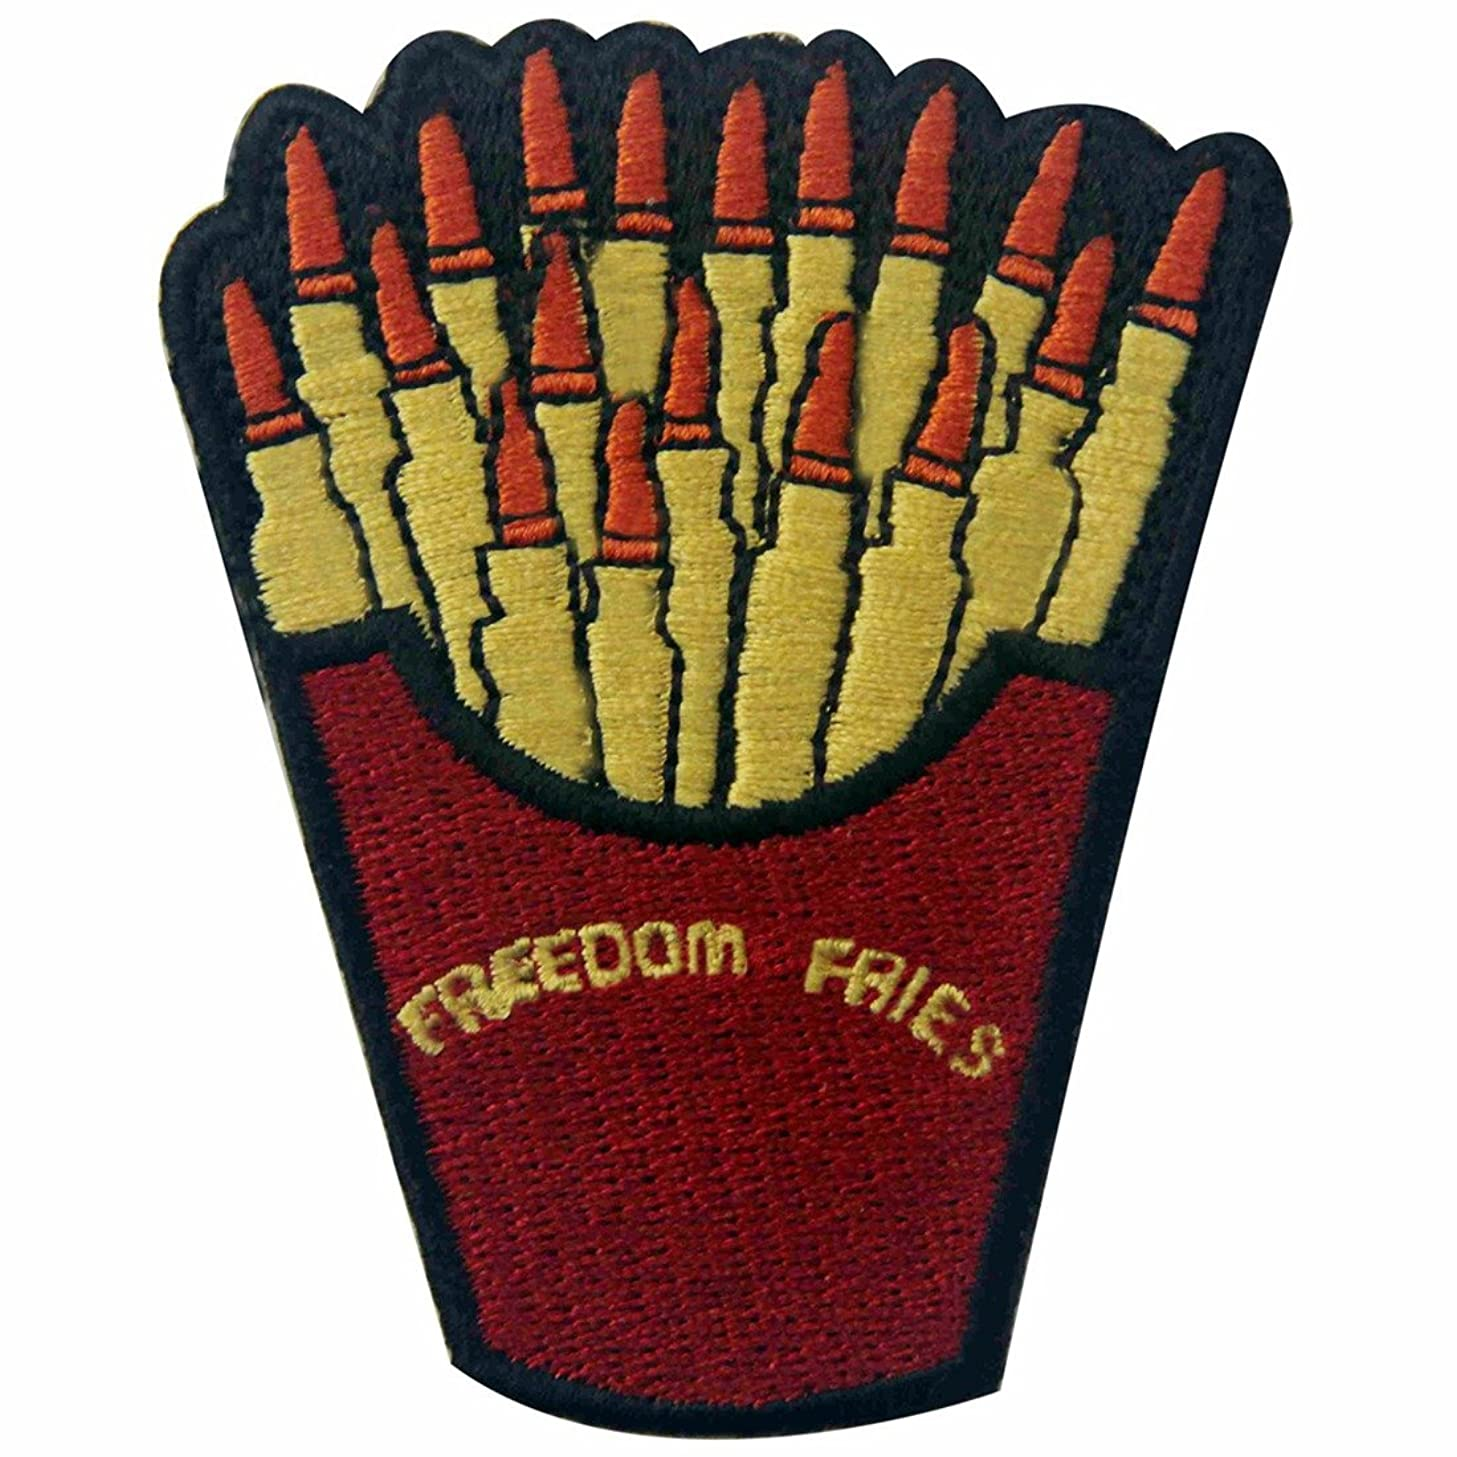 Freedom Fries with Bullet Embroidered Badge Iron On Sew On Patch